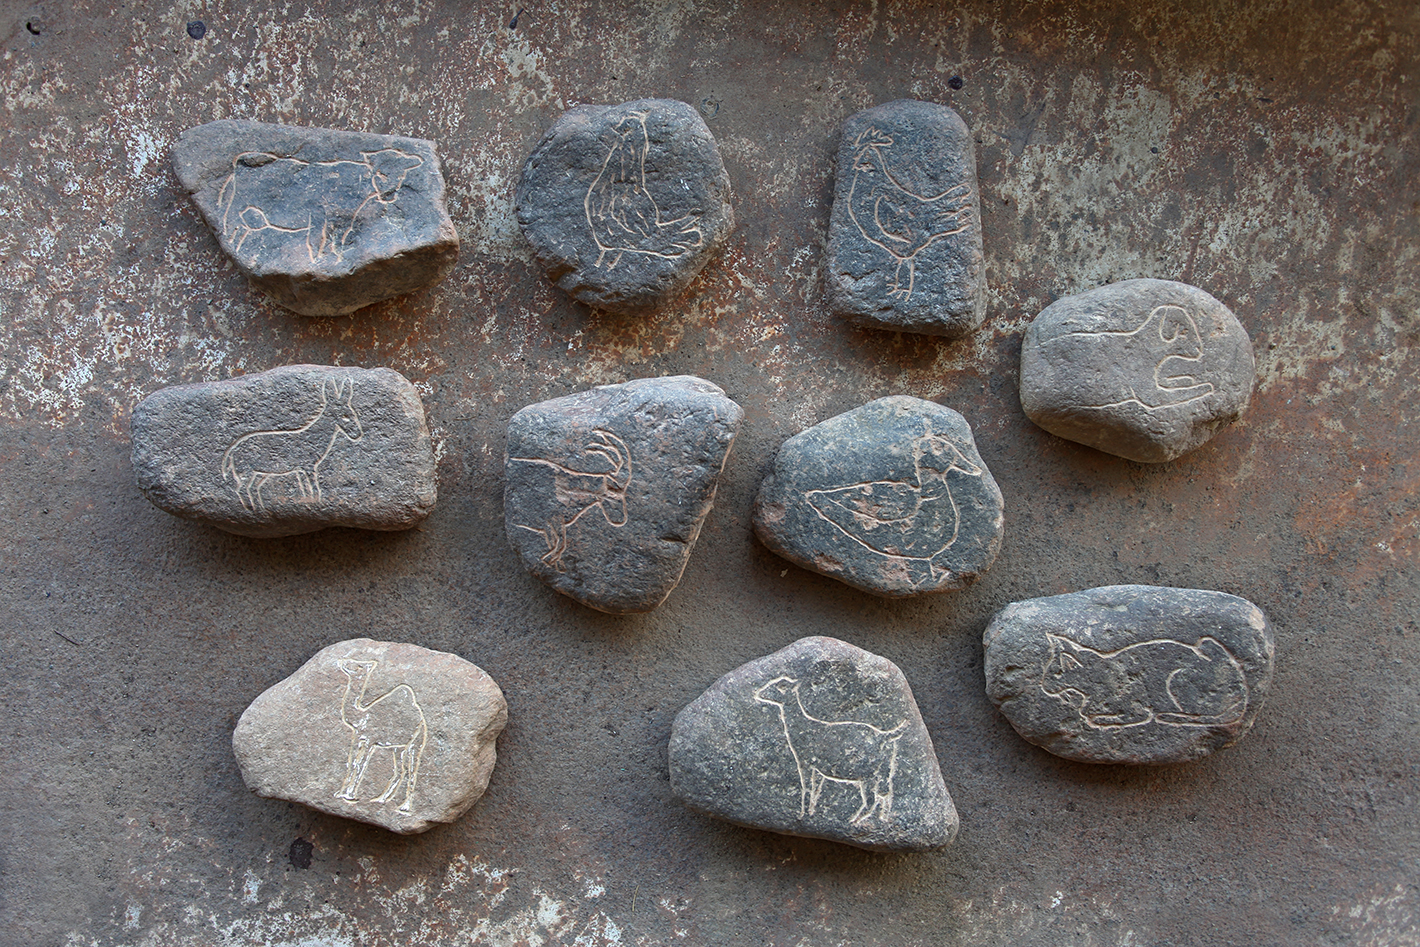 The Comparative Journey, Ten Engraved Stones with Animal Figures Image